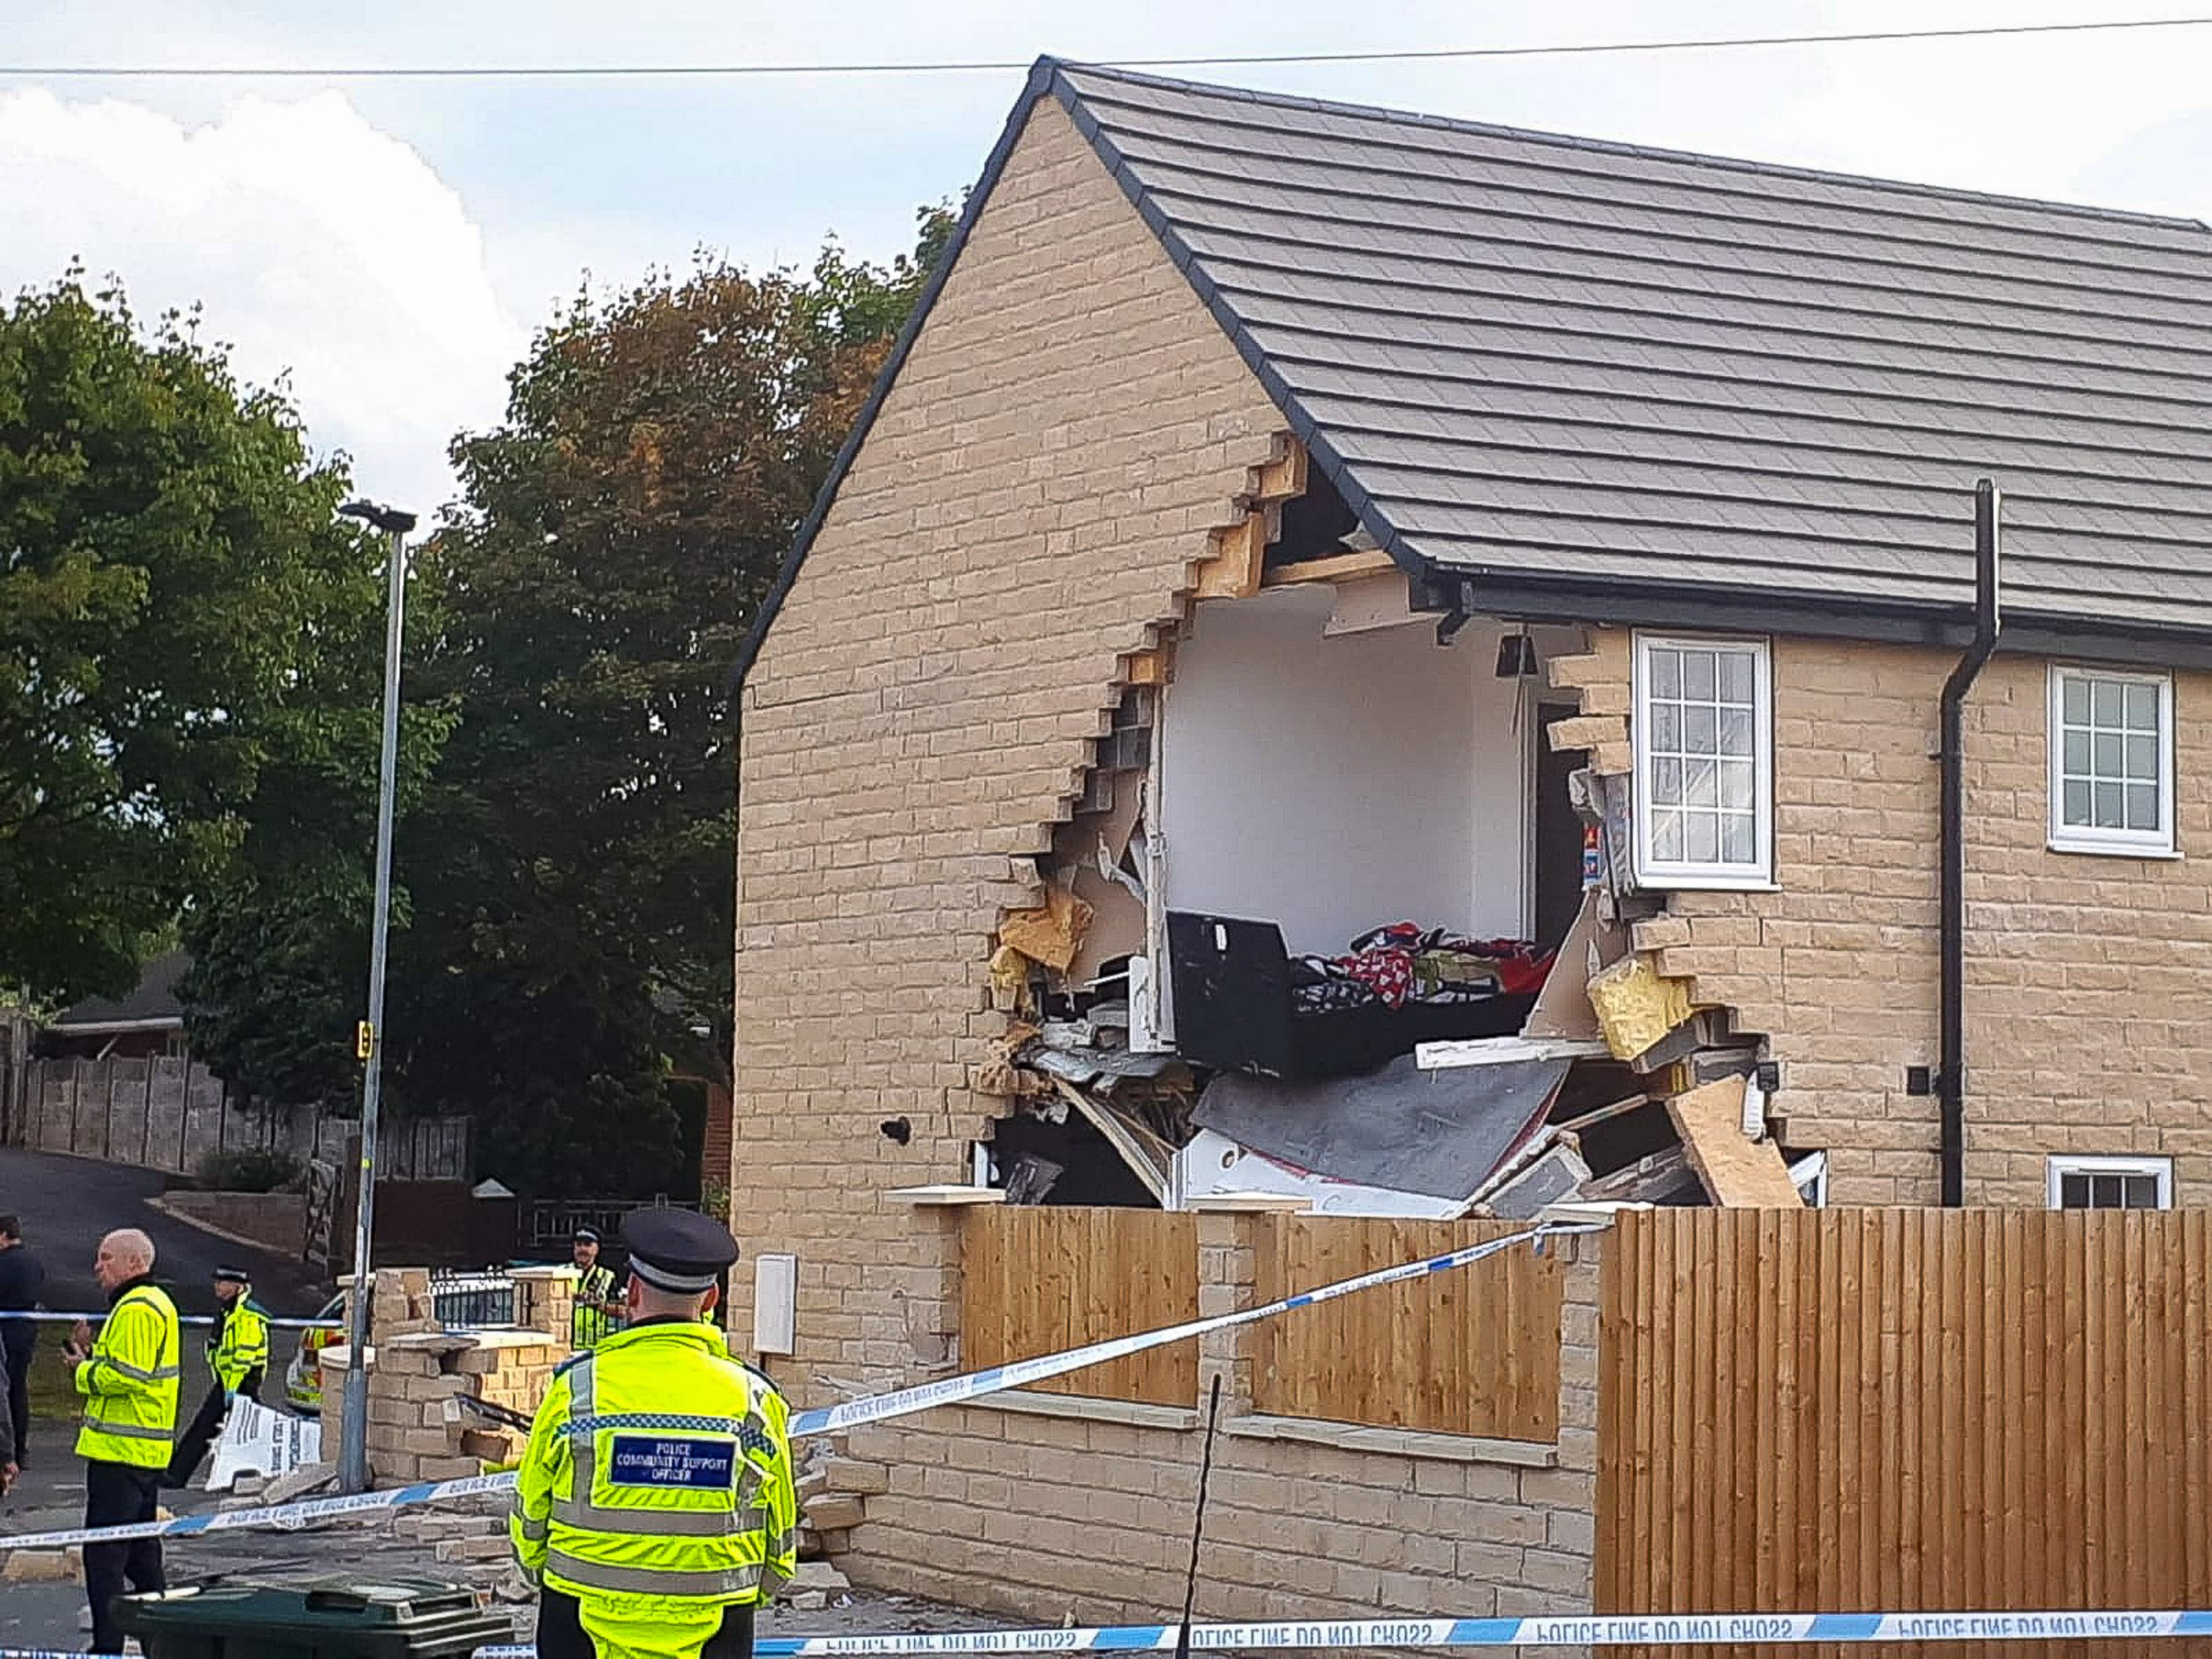 MERCURY PRESS 14/09/18 Barnsley, UK. (PICTURED: Three people were injured when a lorry crashed into the side of a house in Barnsley. Police were called to Park View, in Brierley following reports of an incident involving an HGV. South Yorkshire Fire and Rescue said three fire engines, including one from West Yorkshire, were sent to the scene.) Photo Credit CAG Photography/Mercury Press